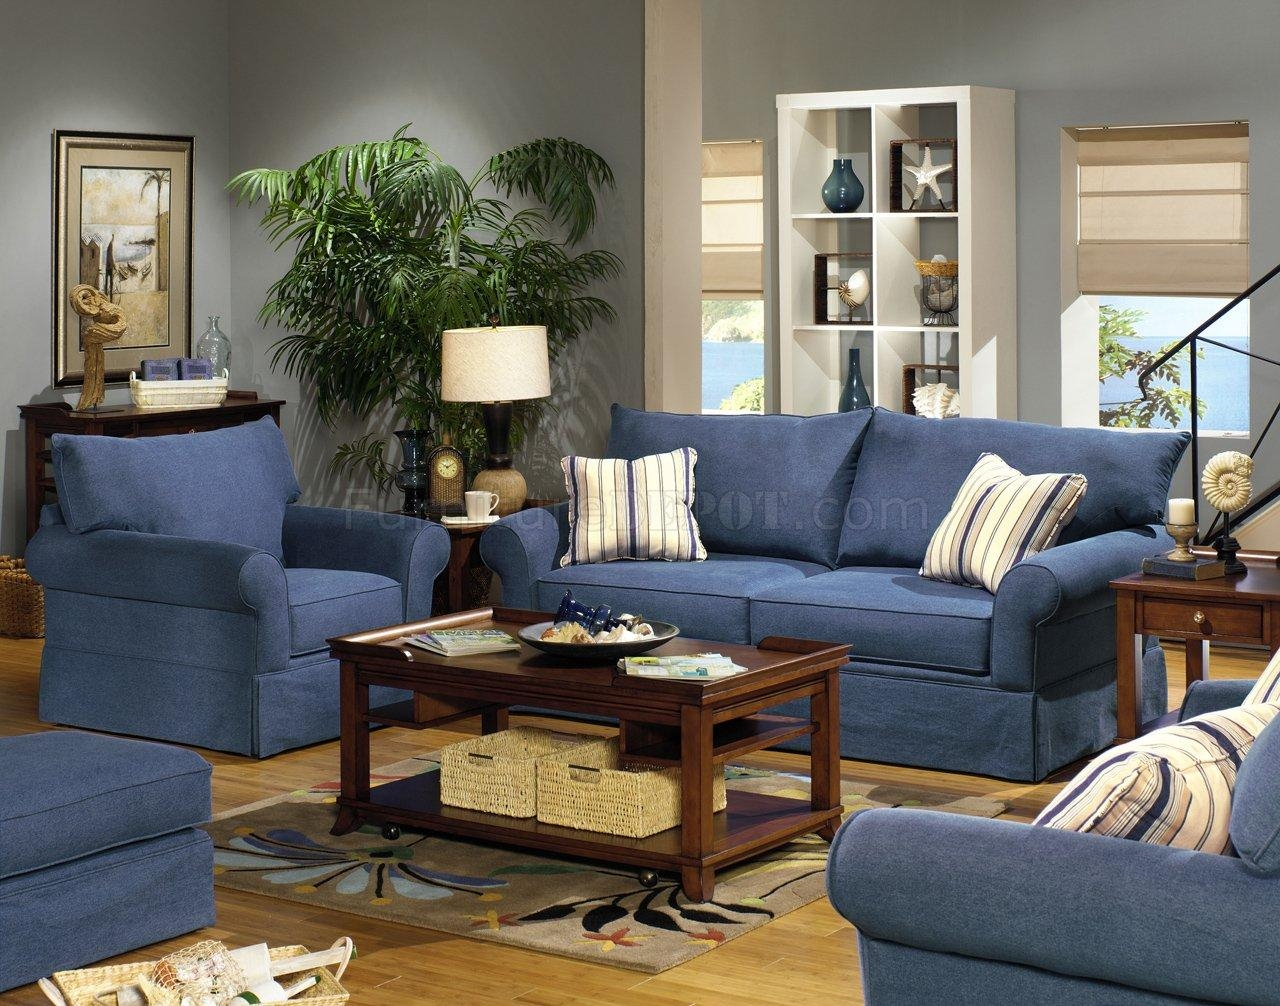 12 ideas of denim sofas and loveseats sofa ideas Denim couch and loveseat